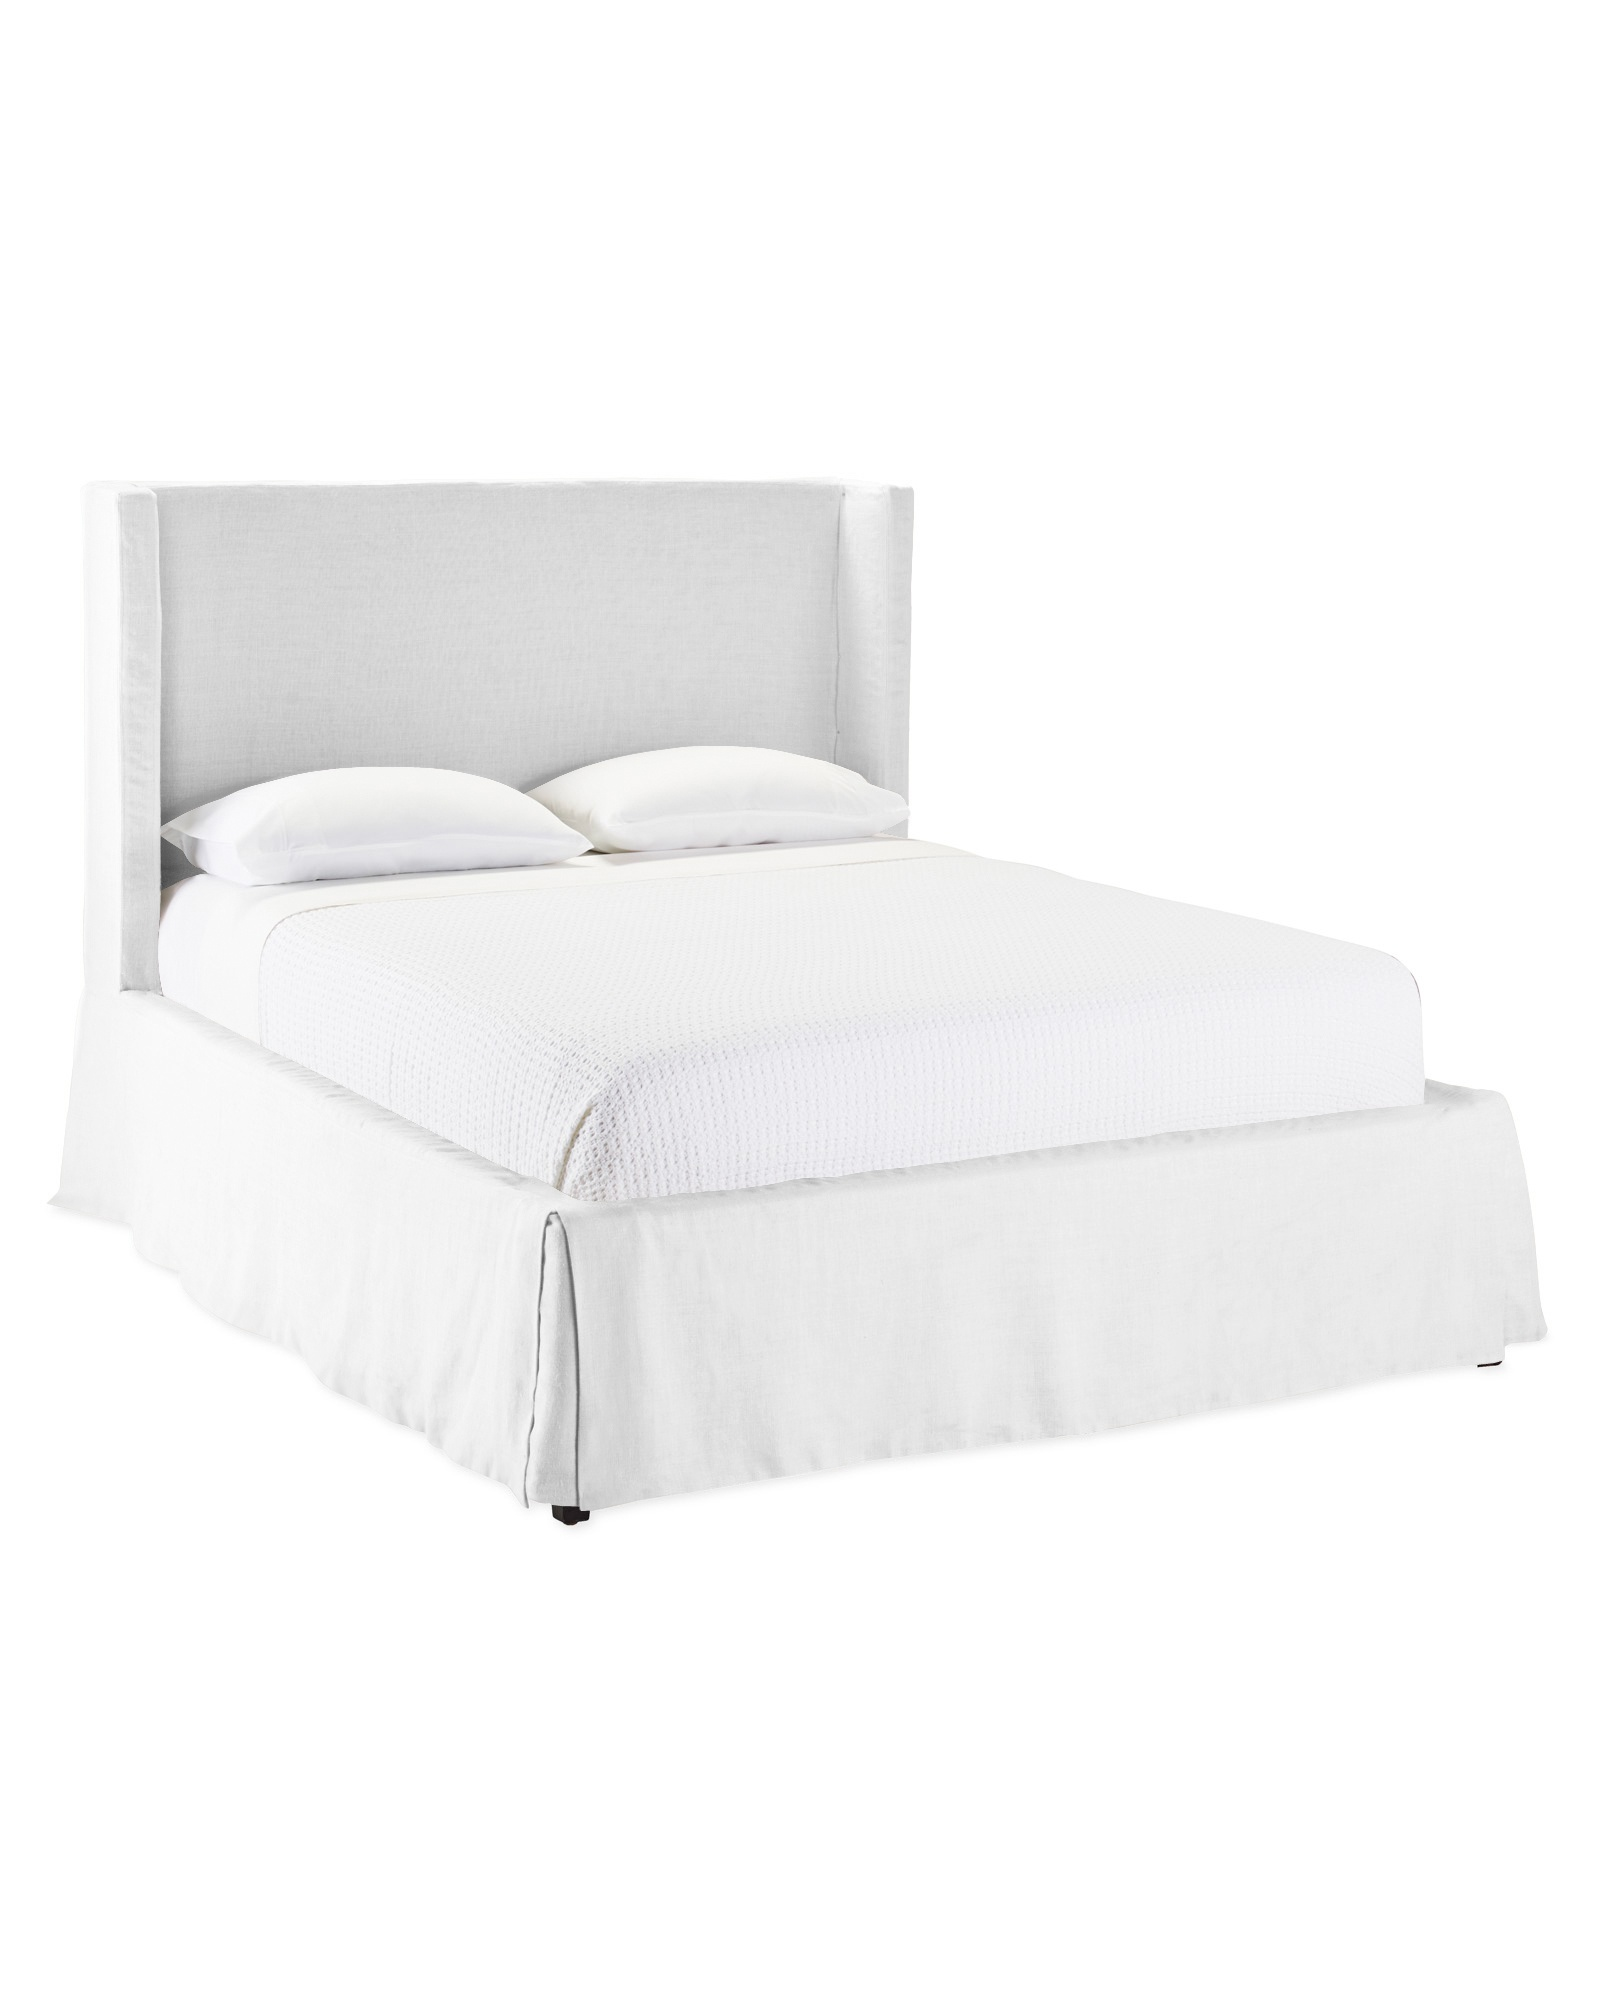 Tall Broderieck Slipcovered Bed - Serena & Lily